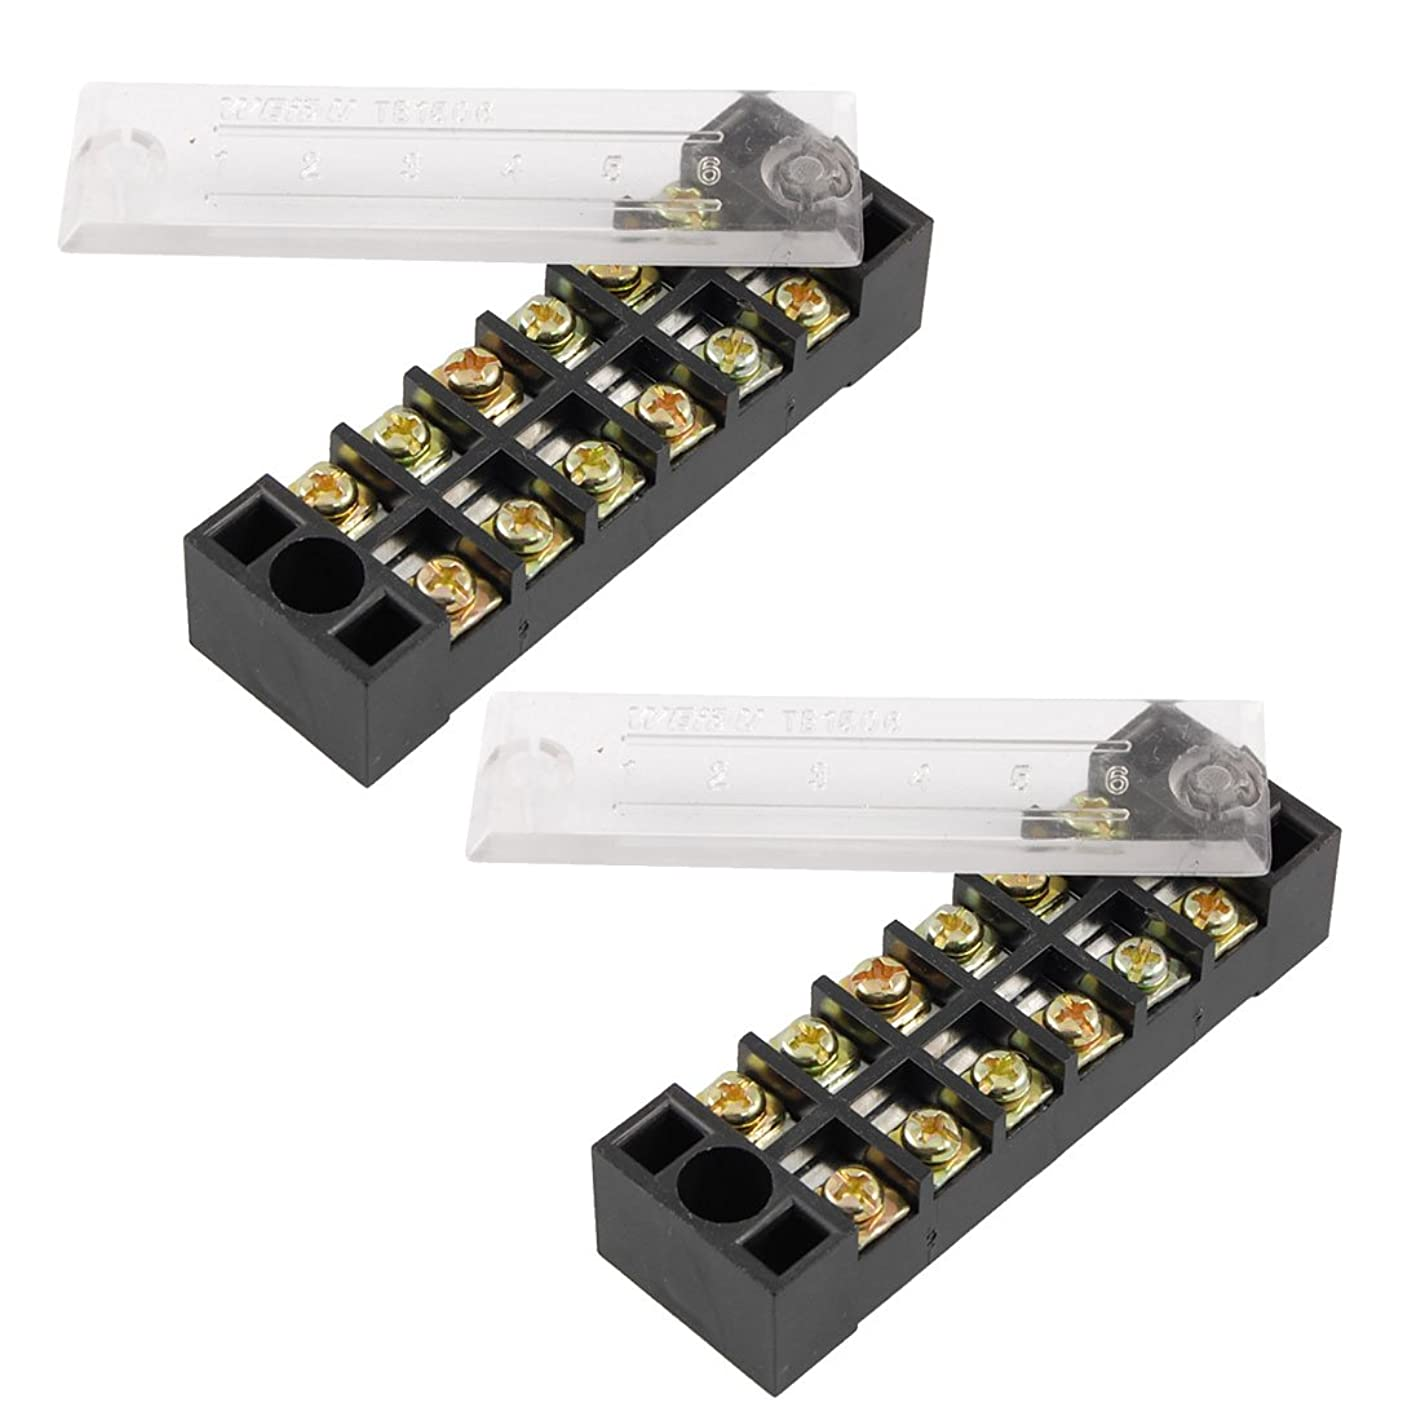 Uxcell 600V 15A 6 Position 12 Screw Terminal Cable Blocks Barrier 2 Pcs